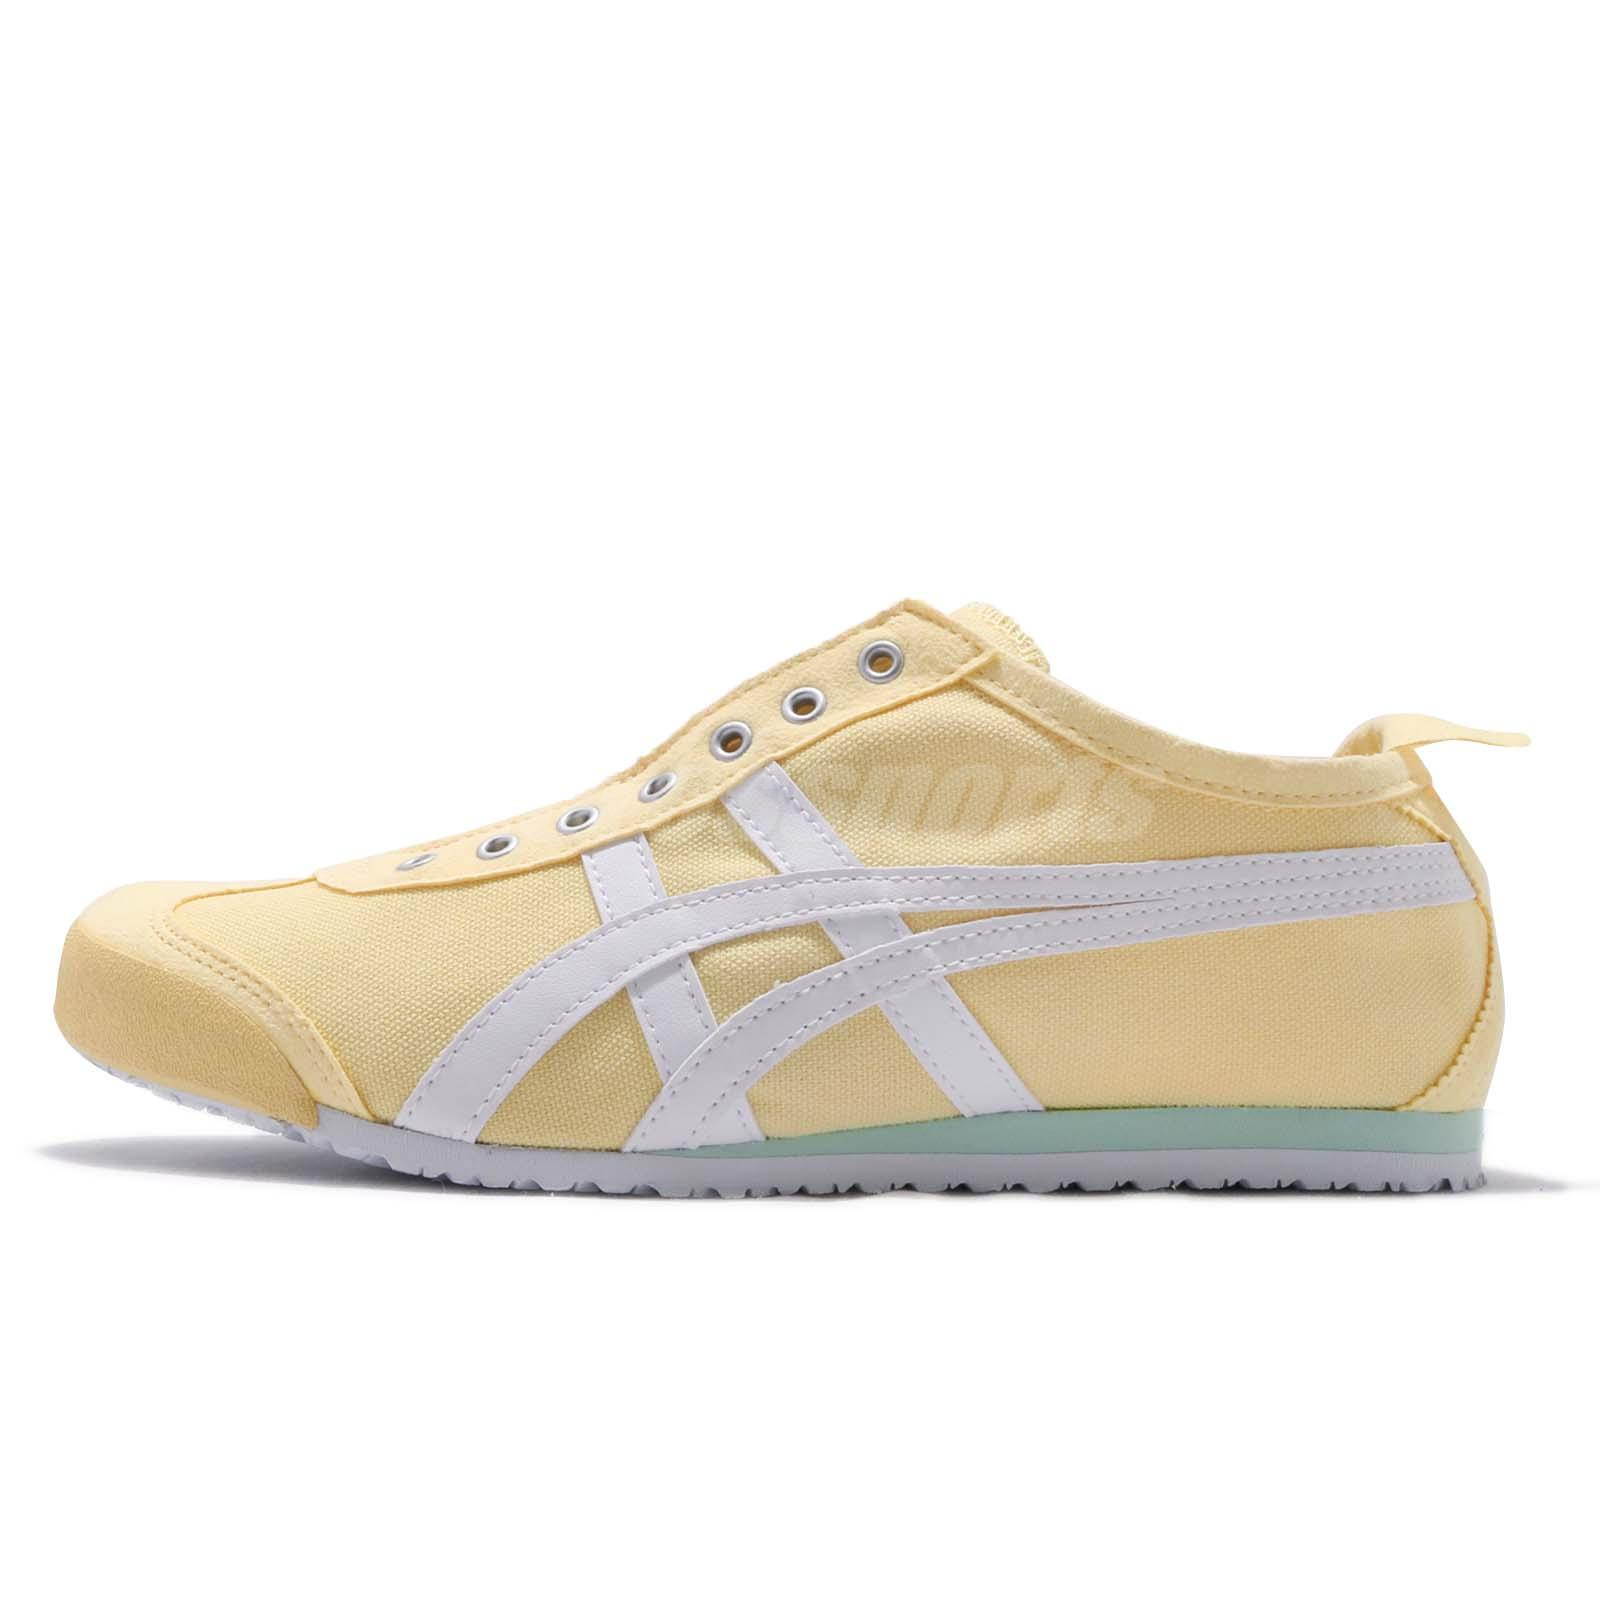 timeless design b6363 3b3cb Details about Asics Onitsuka Tiger Mexico 66 Yellow White Women Slip On  Casual Shoe D3K5N-0301